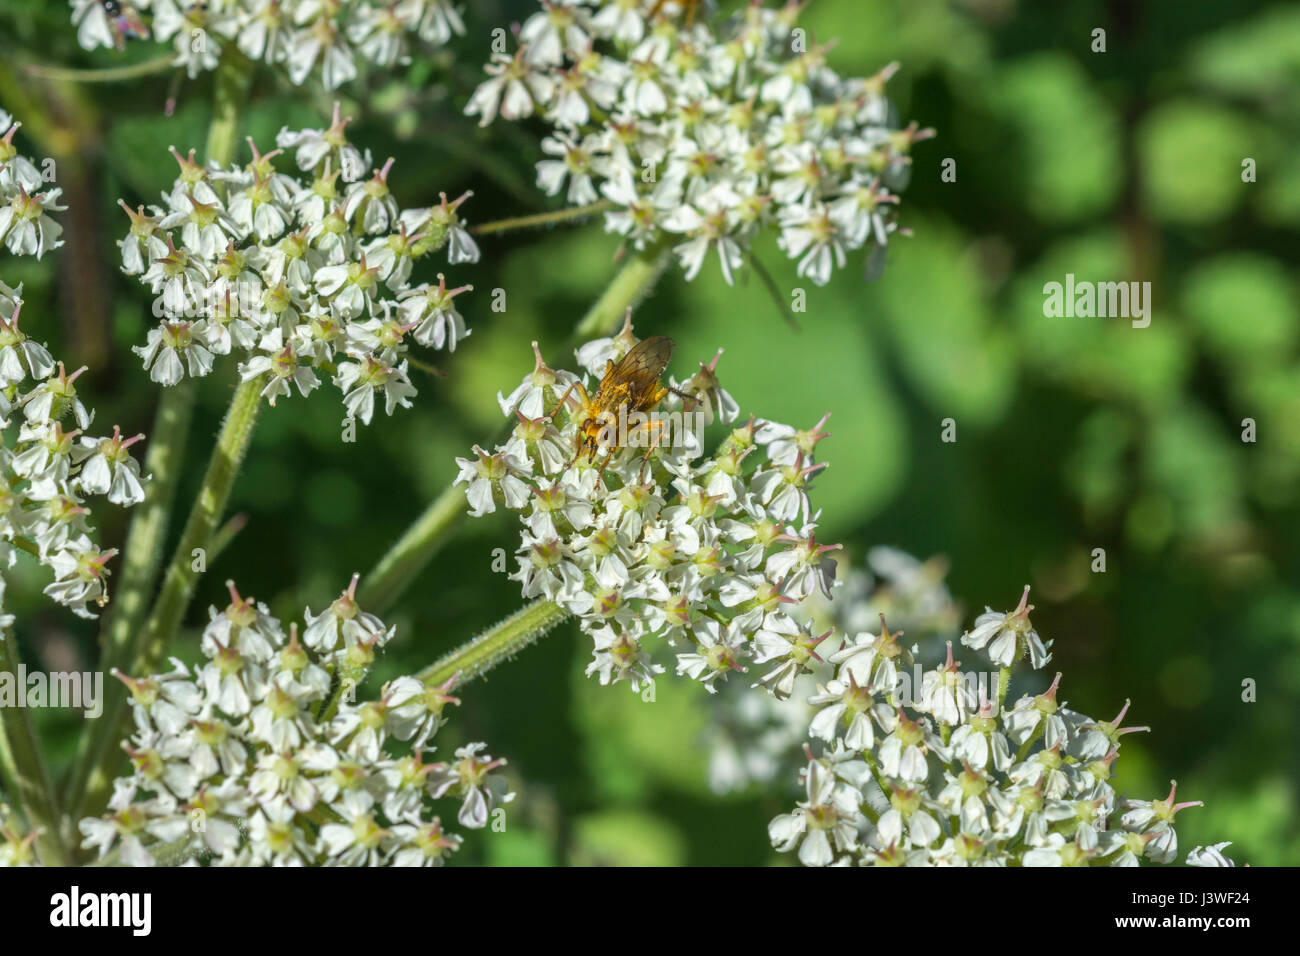 Hogweed / Cow Parsnip flower cluster with Yellow Dung Fly (Scathophaga sterconia) feeding on nectar. - Stock Image